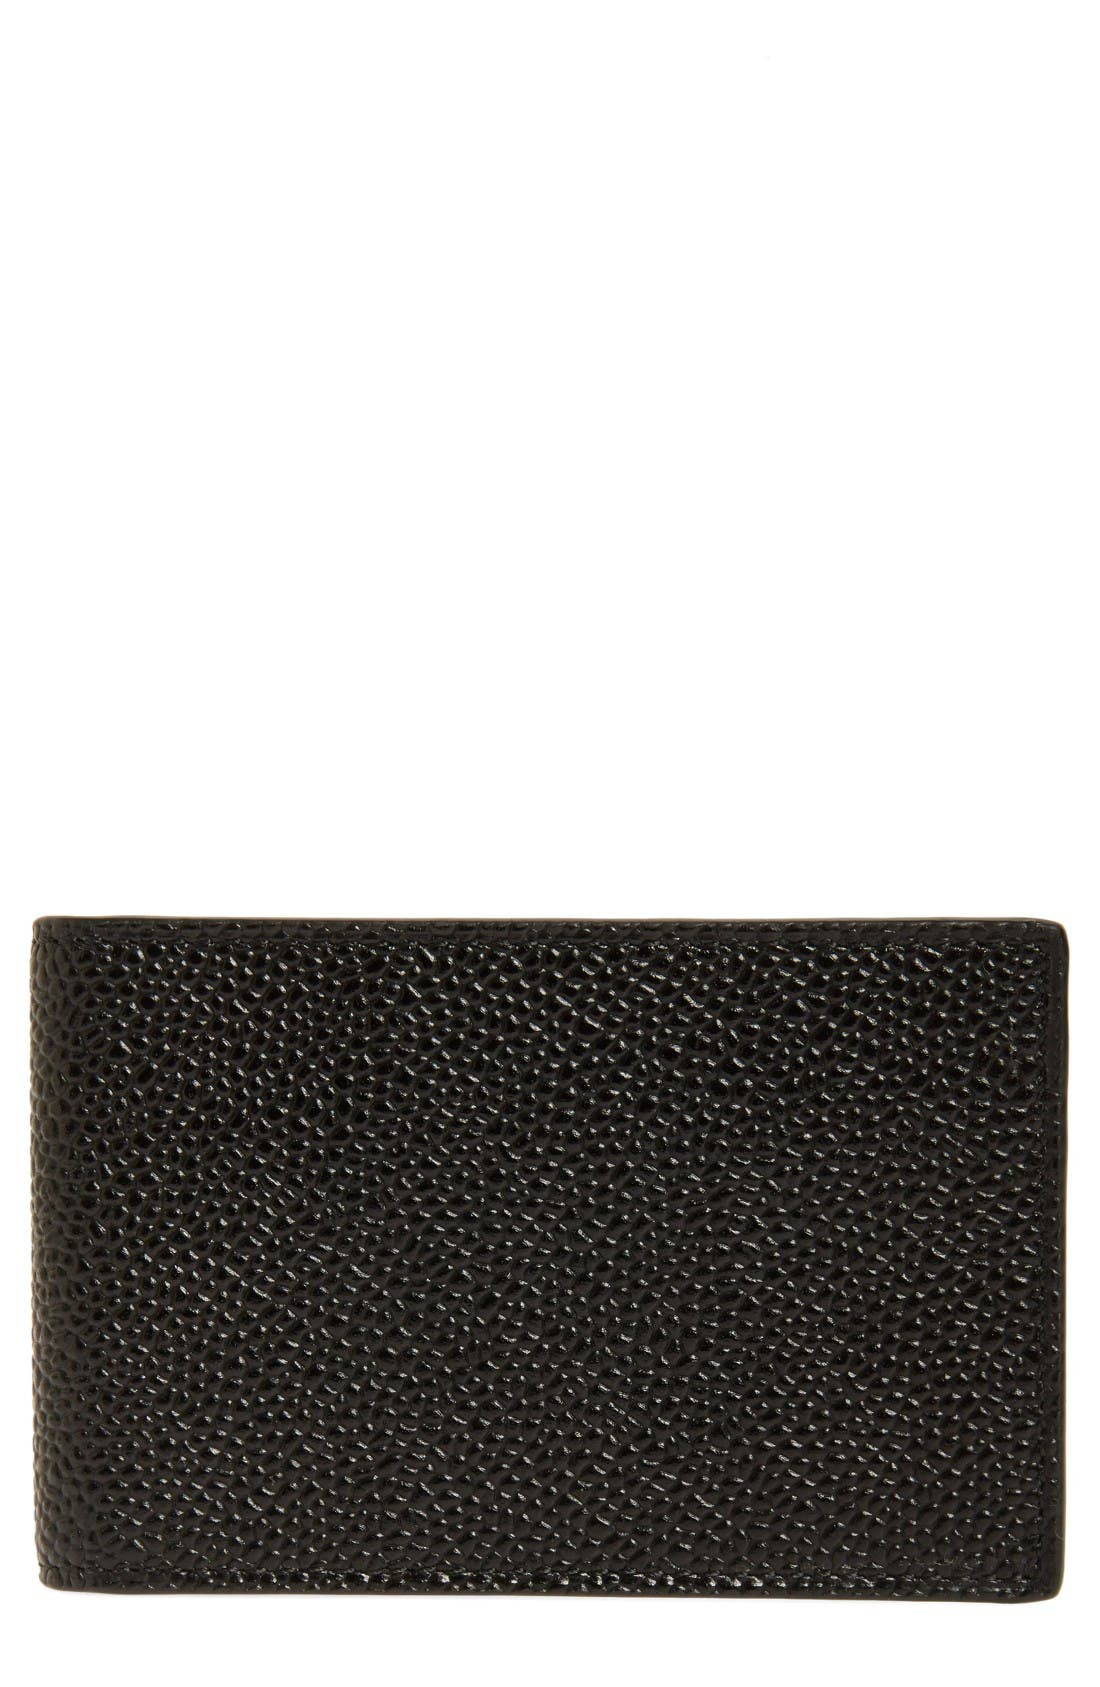 Thom Browne Pebbled Leather City Wallet